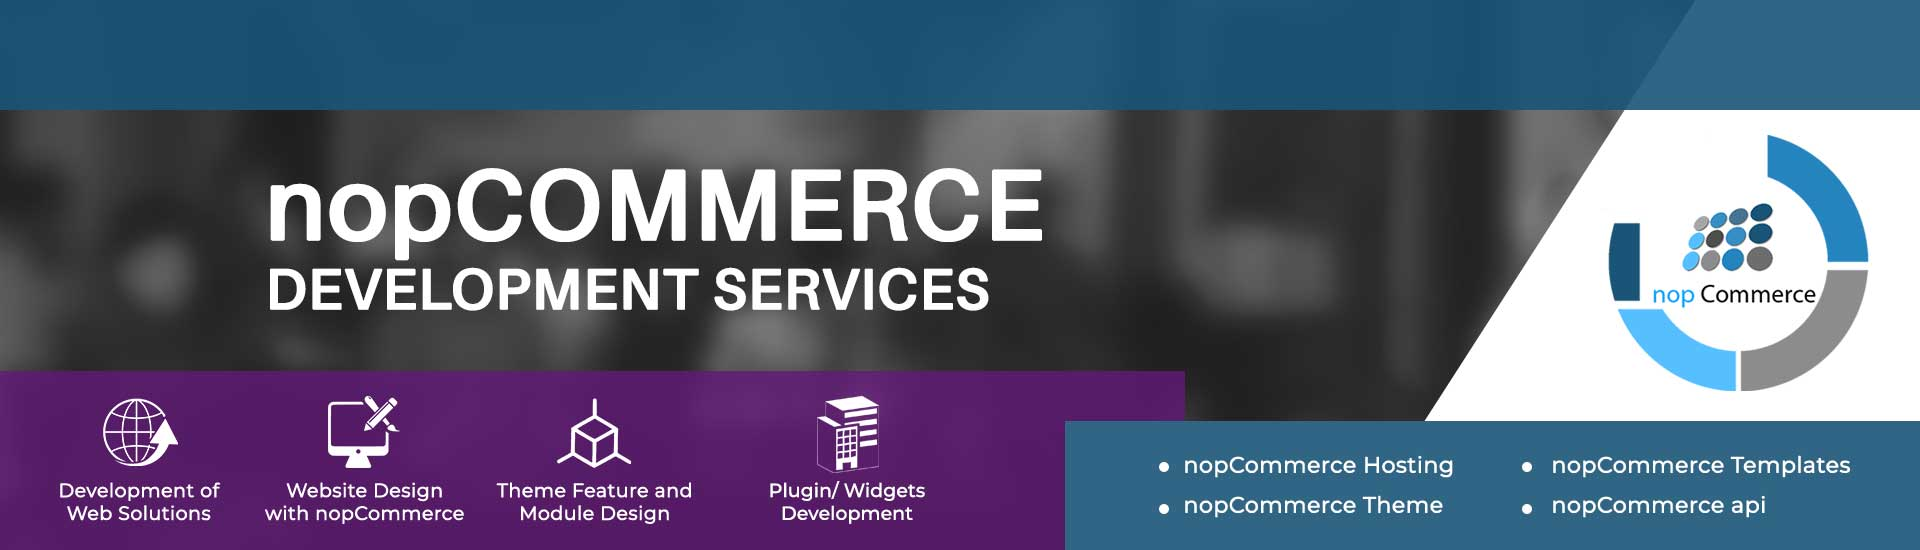 nopcommerce-for-tech2globe-1